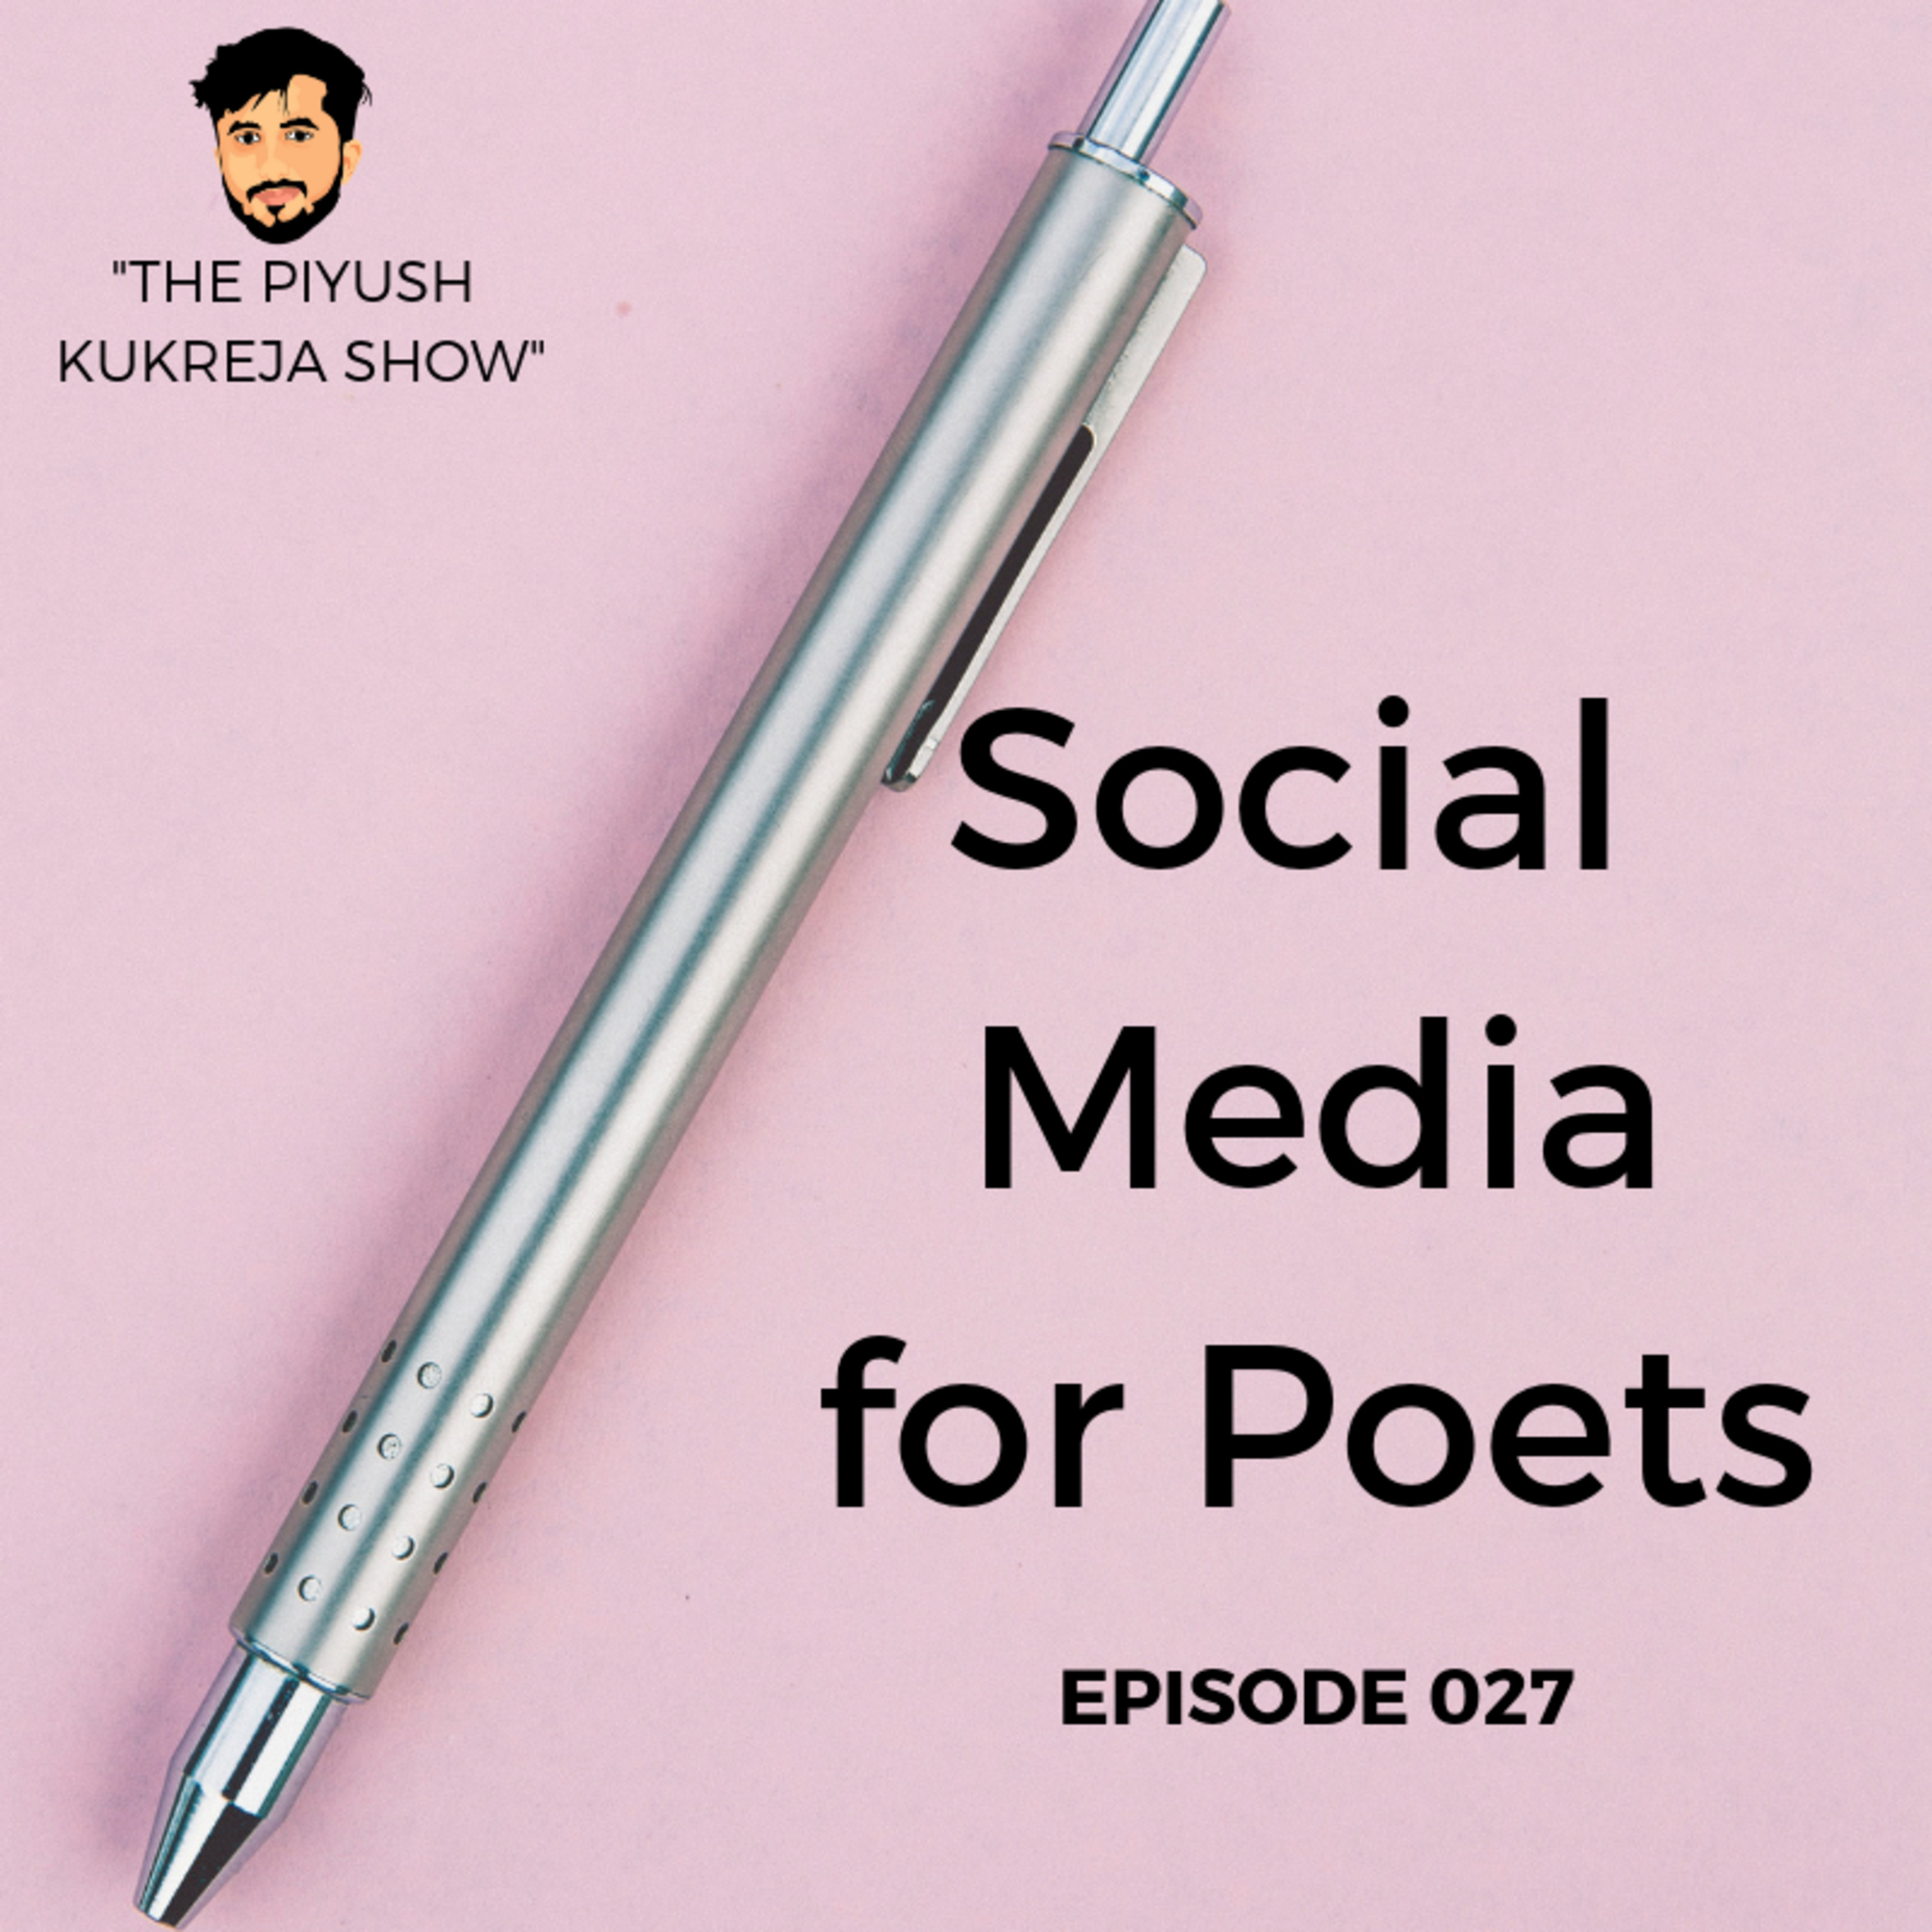 Social Media for Poets | How a Poet can use Social Media to build his/her Brand #E027